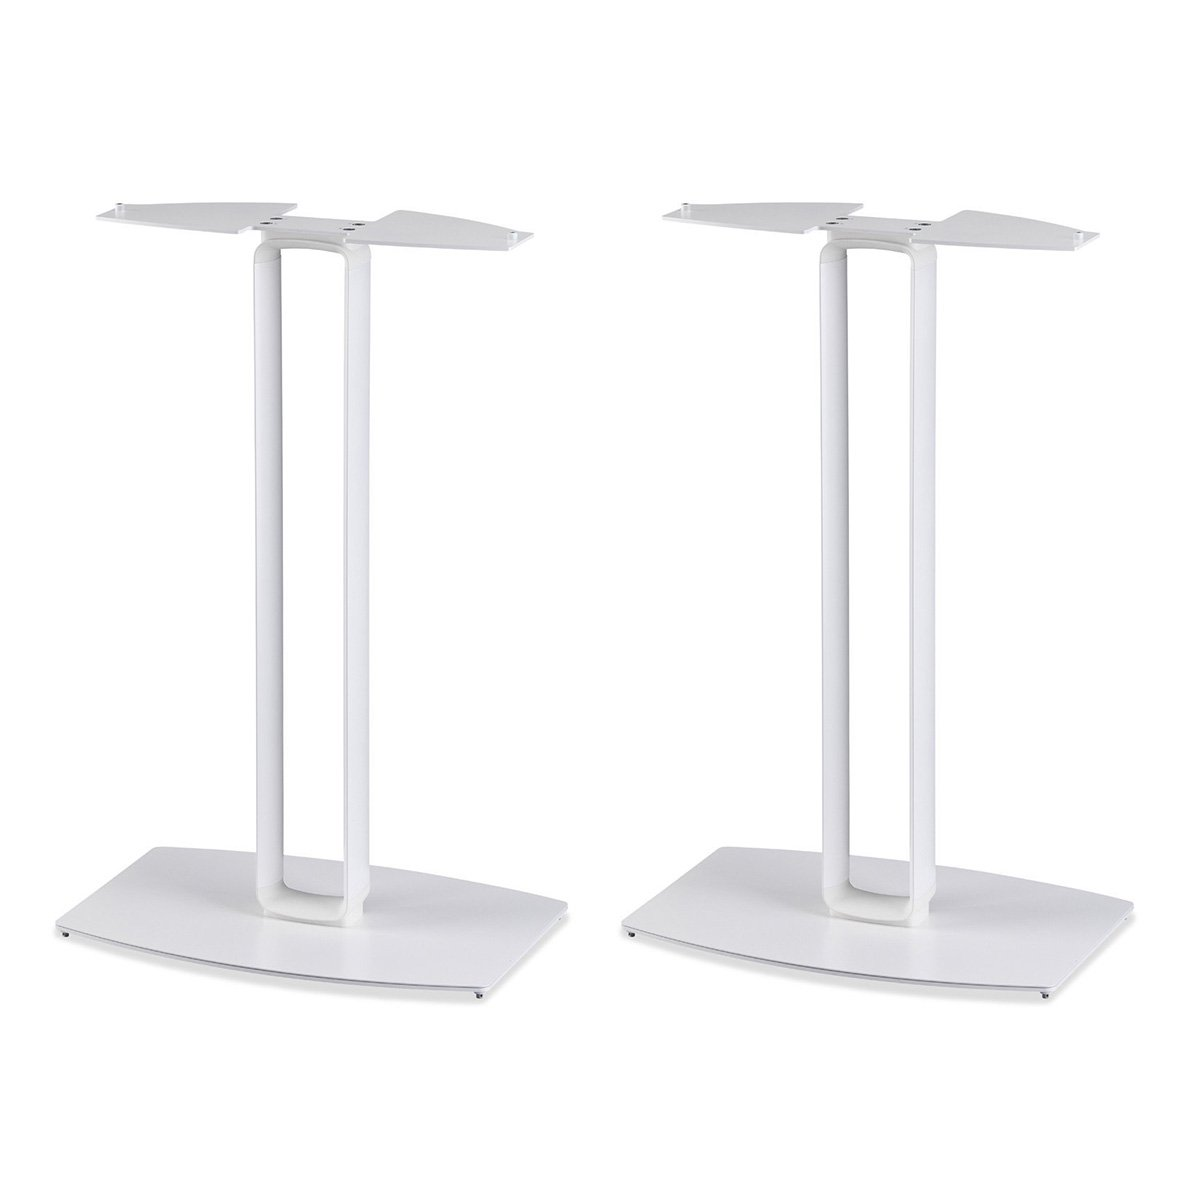 SoundXtra Floor Stands for Bose SoundTouch 30 - Pair (White)